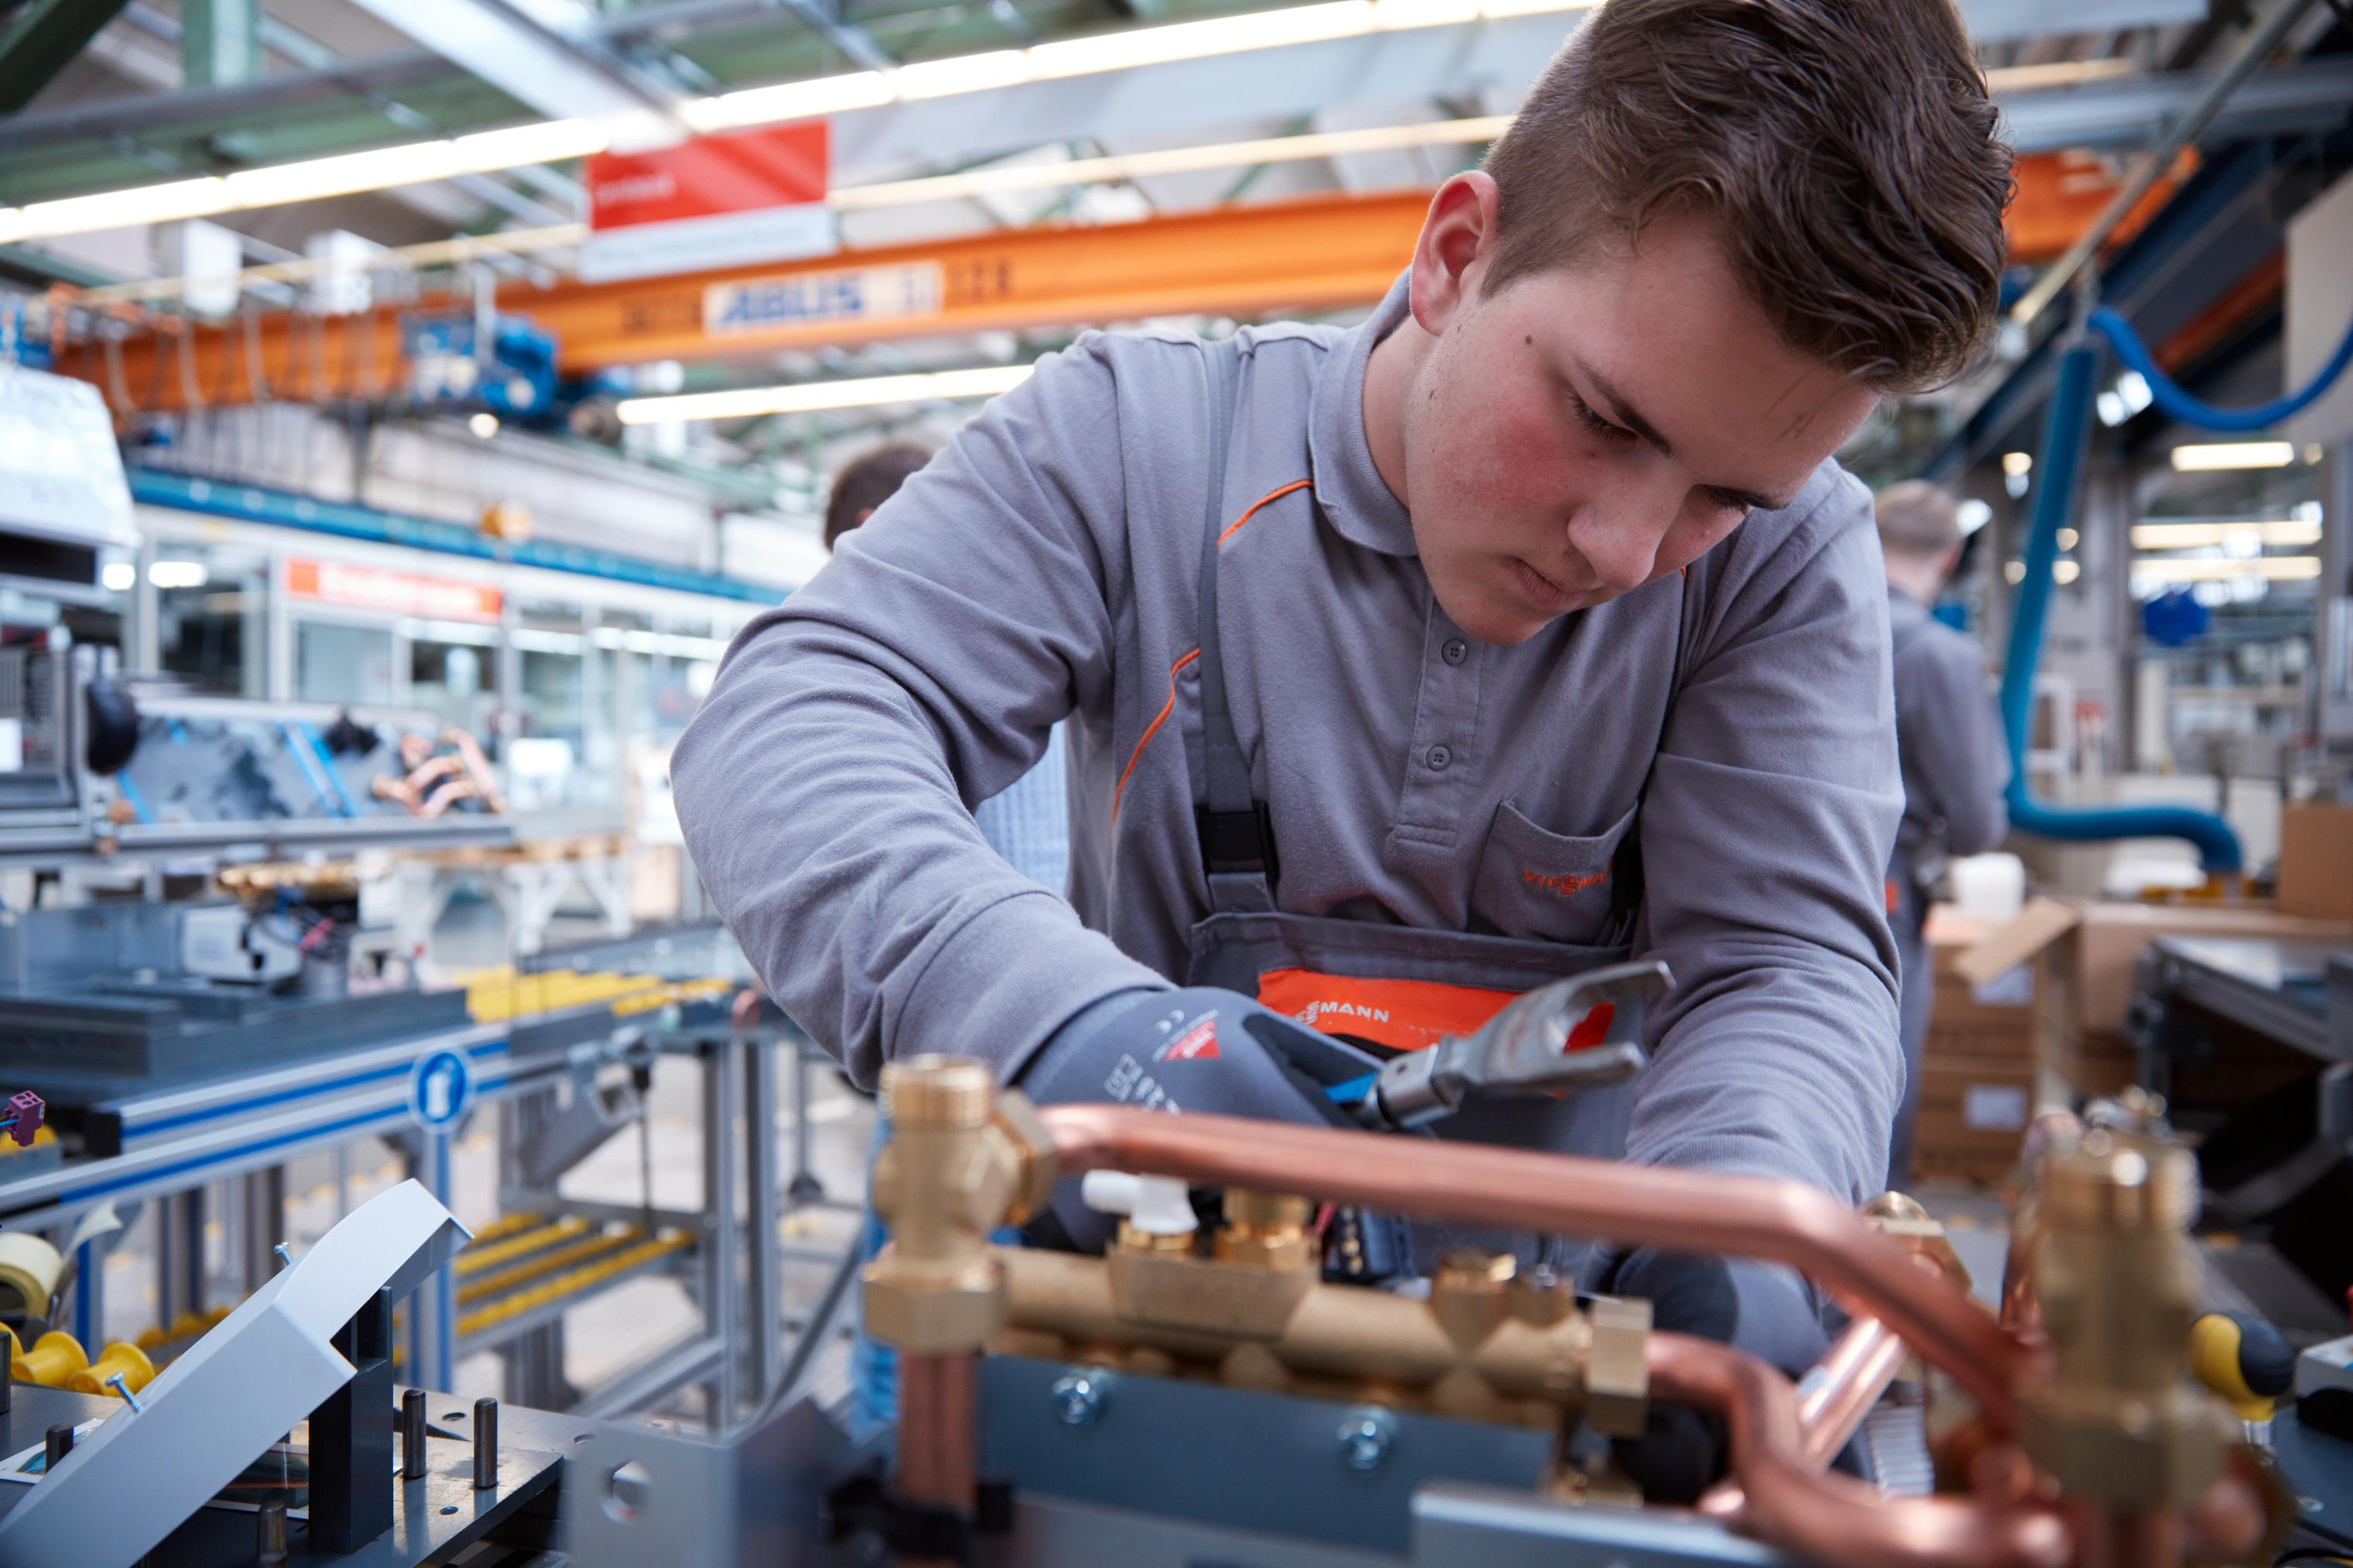 The image shows a trainee at the Viessmann factory.